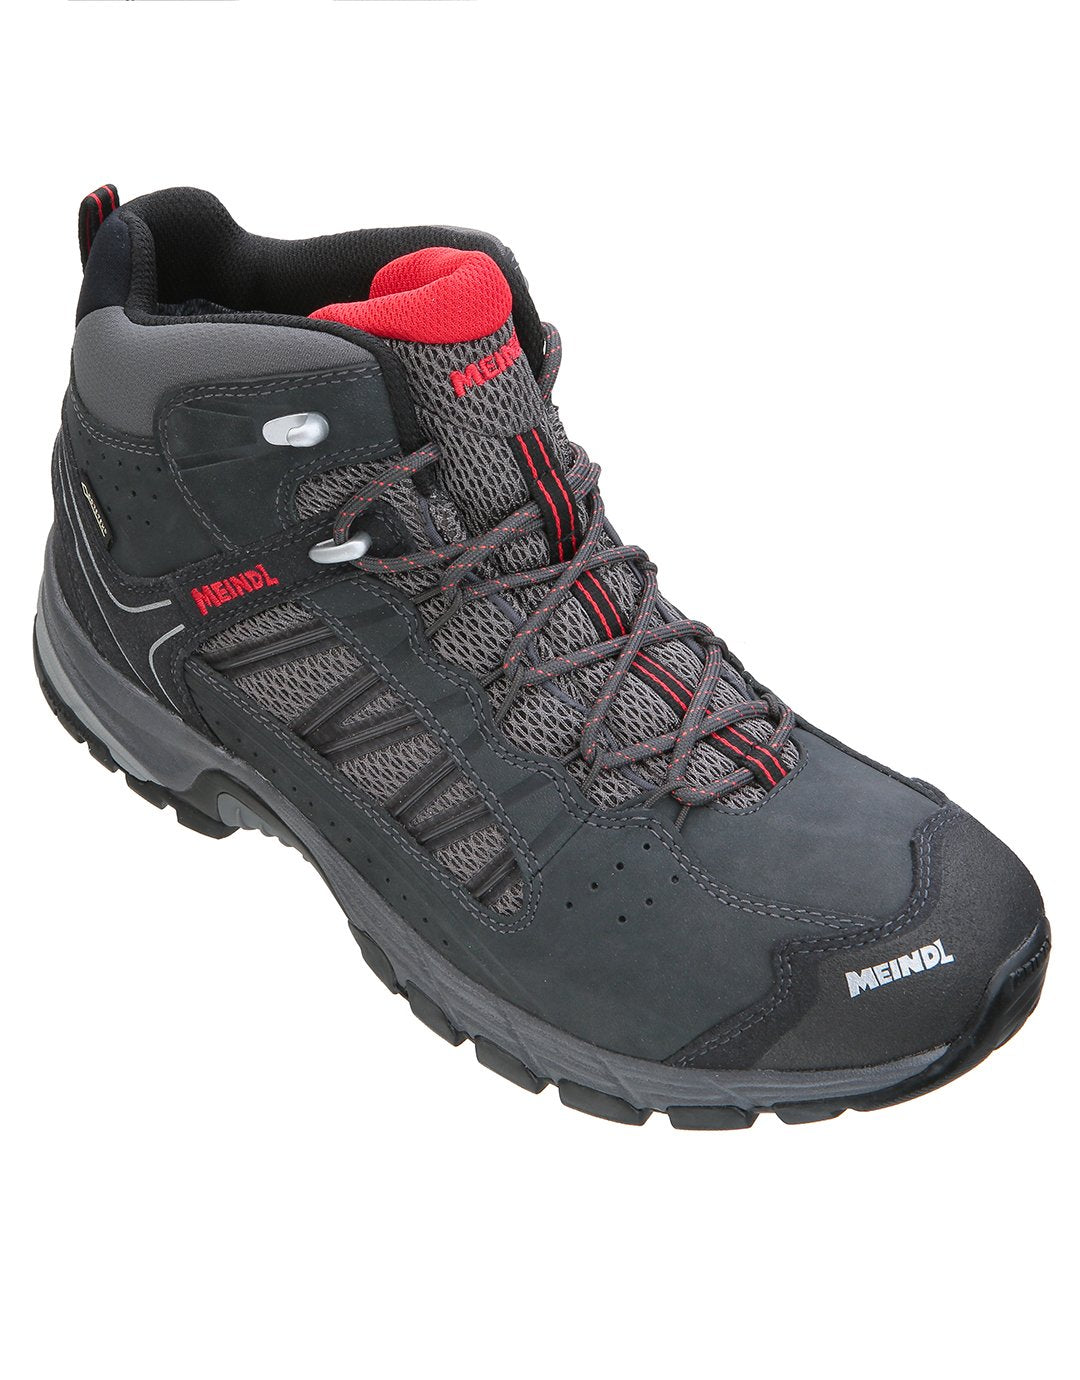 a16a380c67f Meindl Mens Journey Mid GTX Walking Boot - Anthracite Red